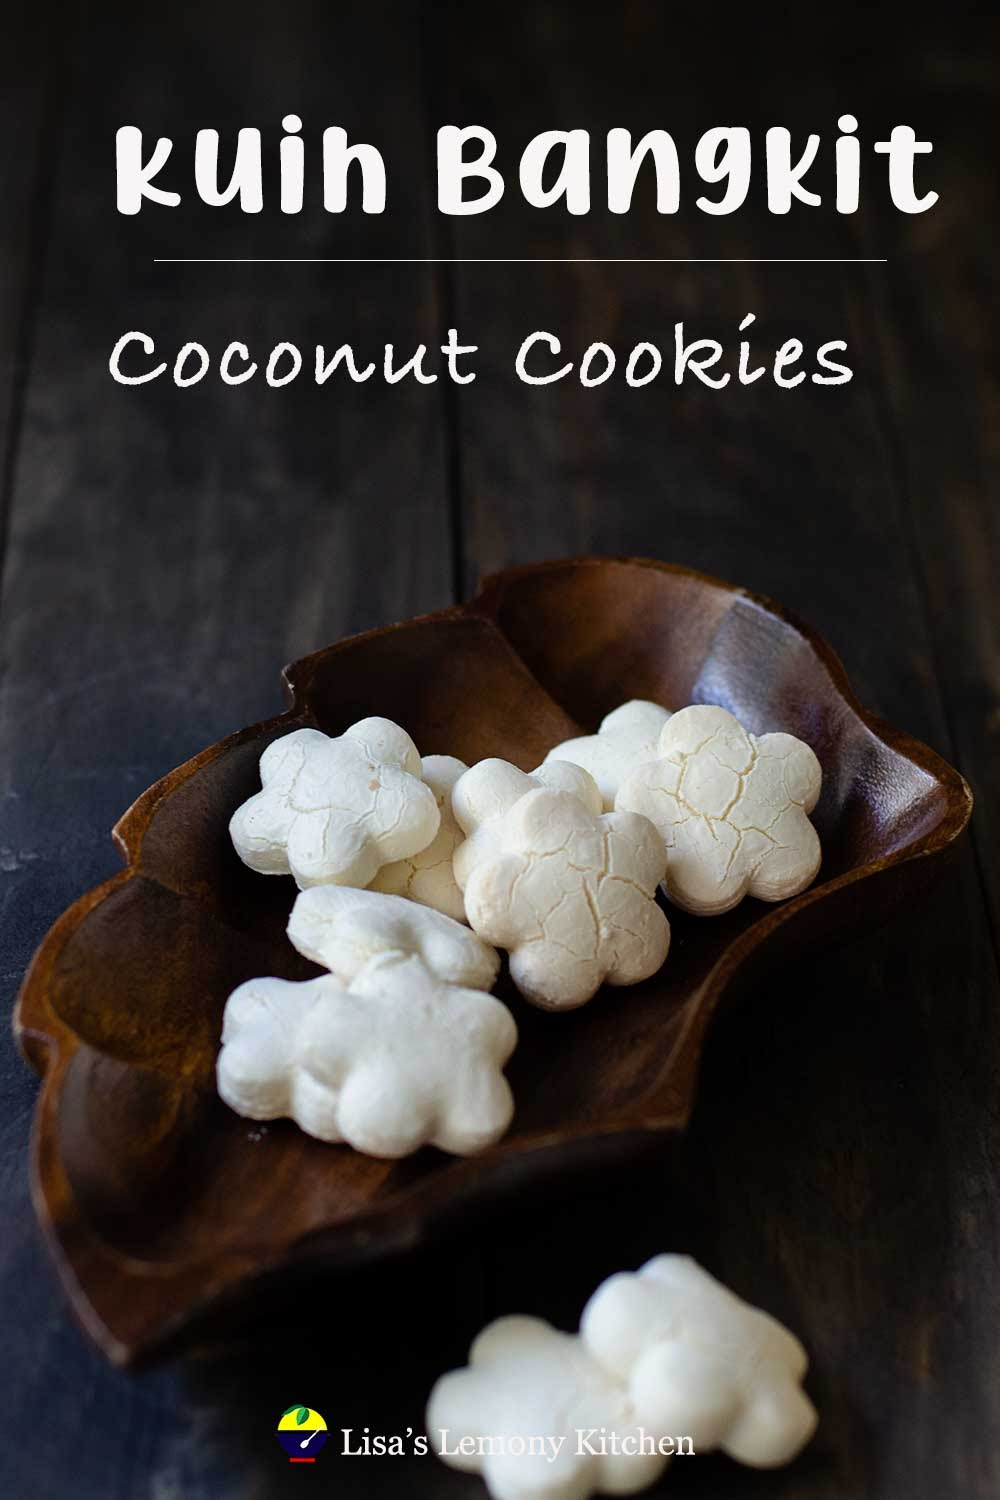 Baking Kuih Bangkit or Tapioca Cookies   It is Malaysian traditional gluten free cookies that melt in the mouth.